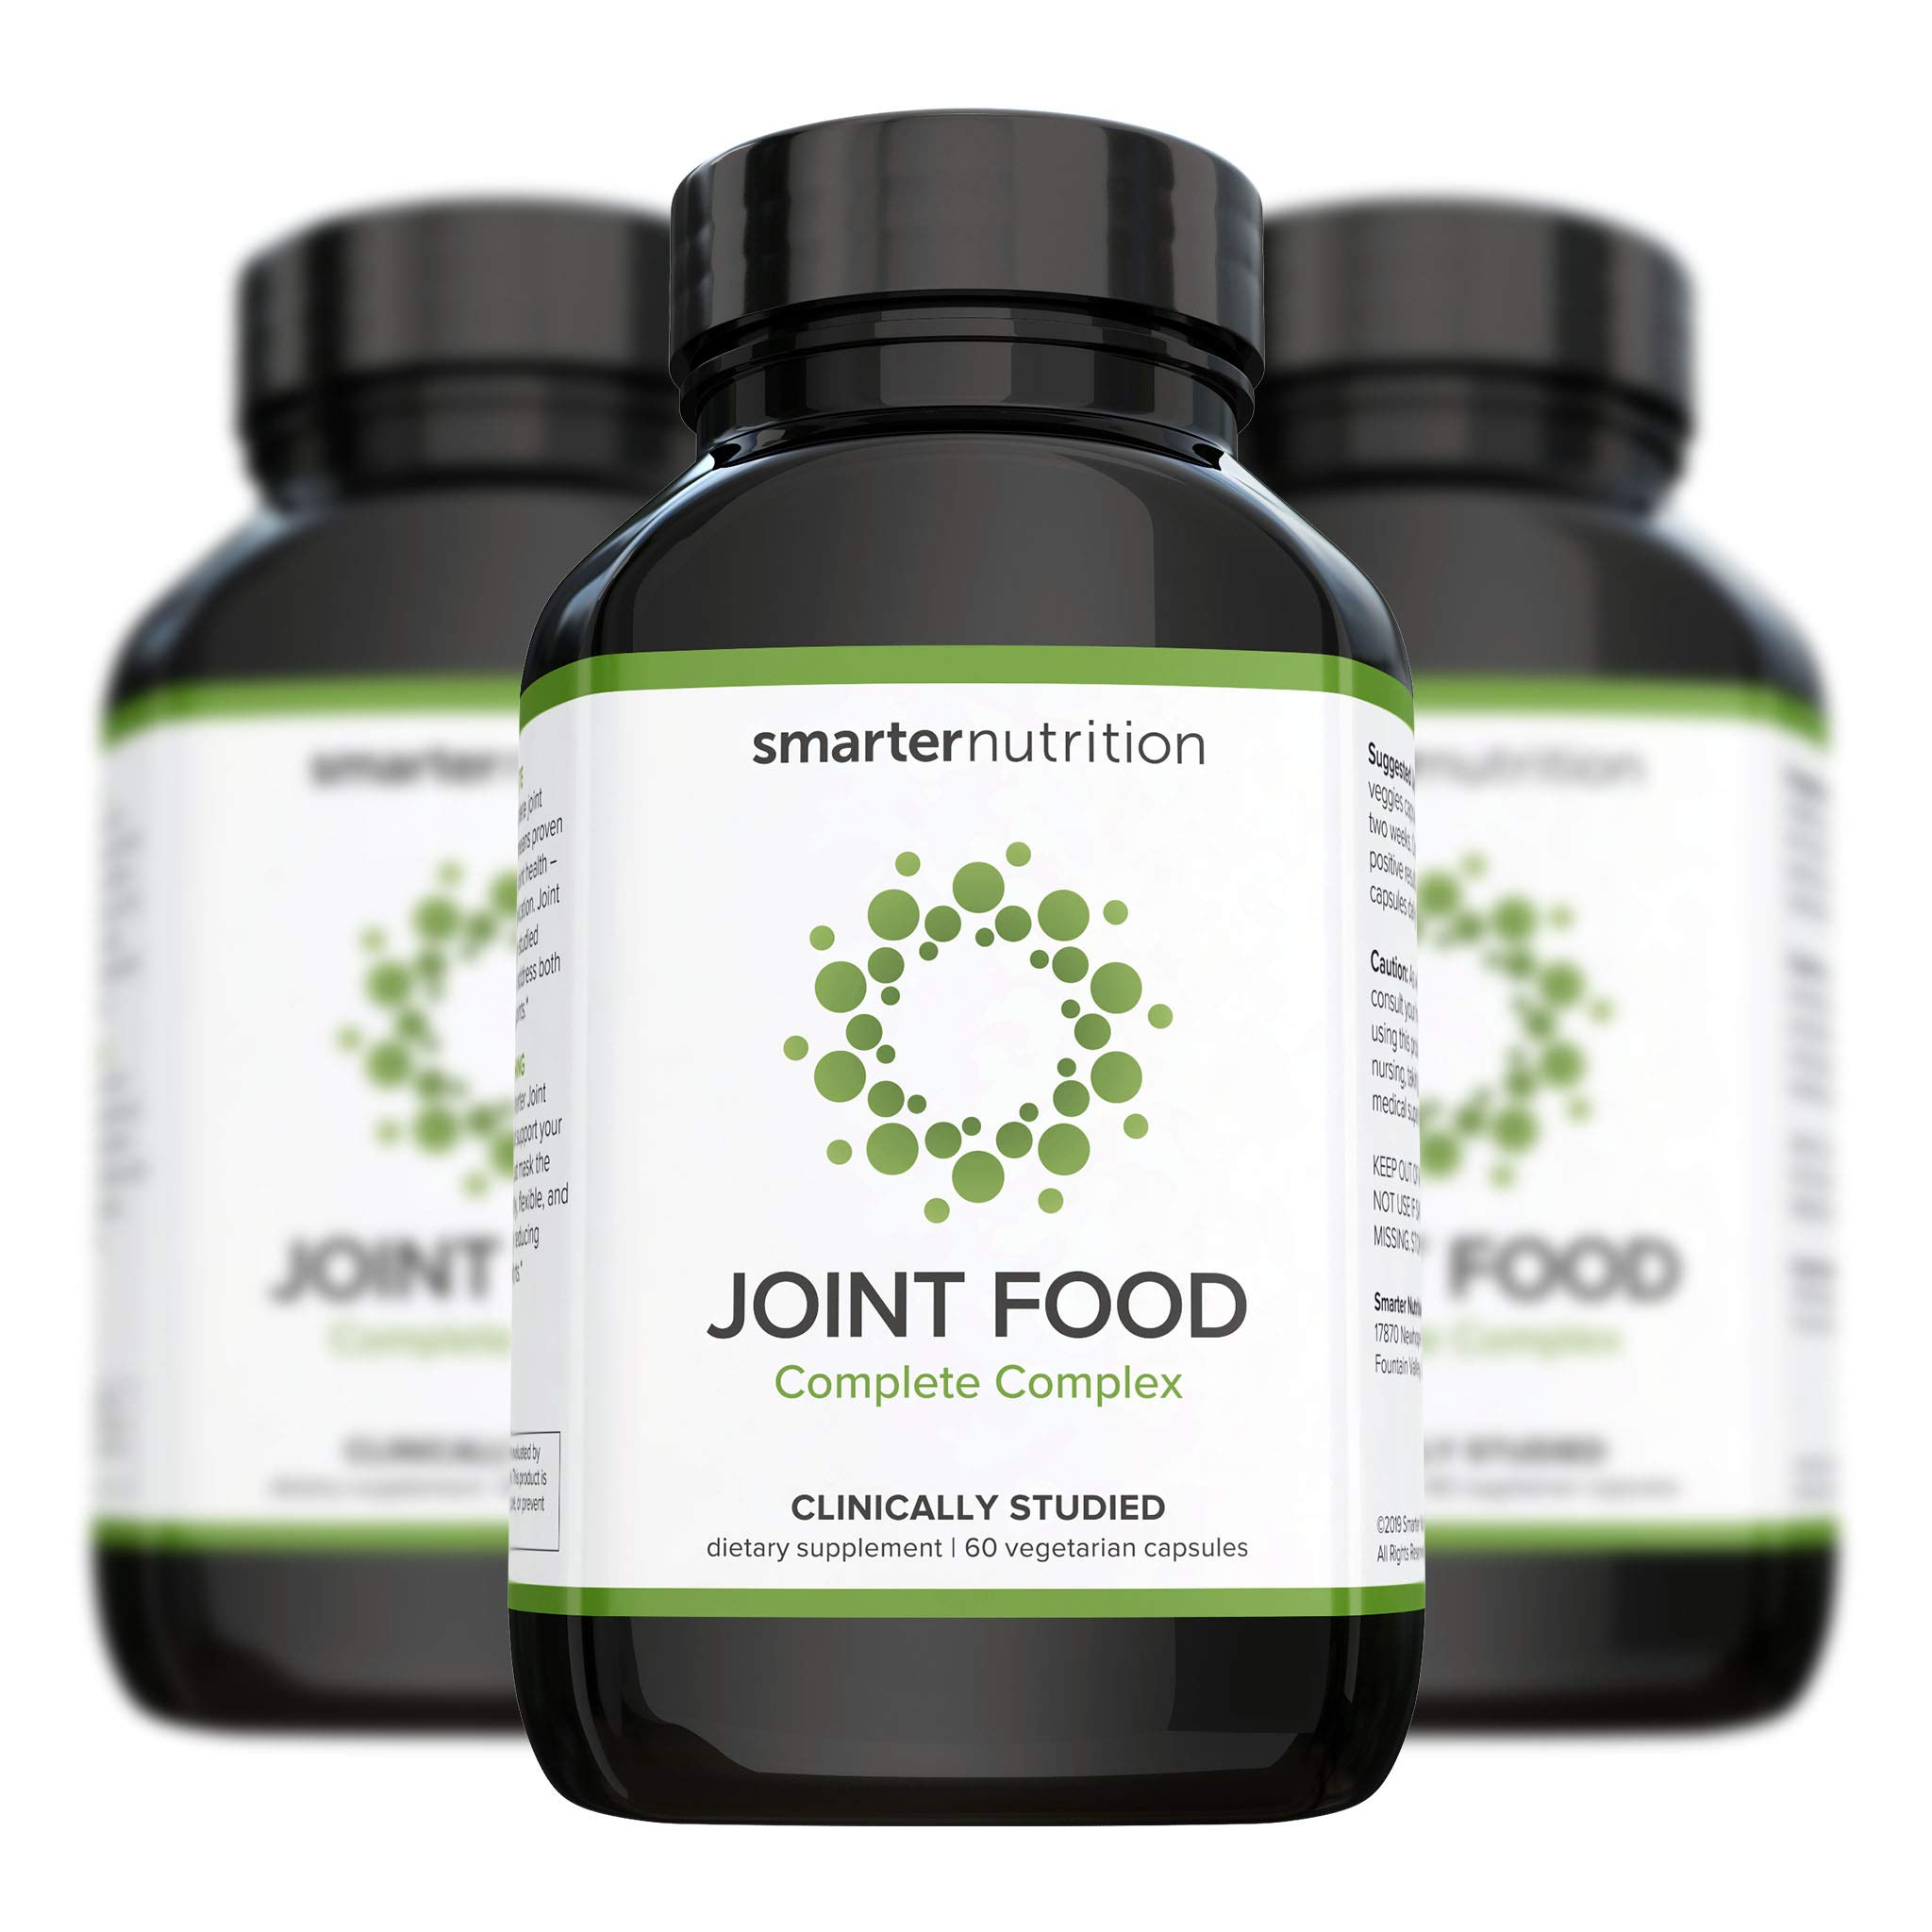 Smarter Joint Food - Joint Nourishment Provides Healing Support & Maintains Healthy Joints - Formulated with Whole Collagen, MSM, Vitamin C, Turmeric, Bromelain, CMO, Lipase (180 Count - 3 Month) by SMARTERNUTRITION